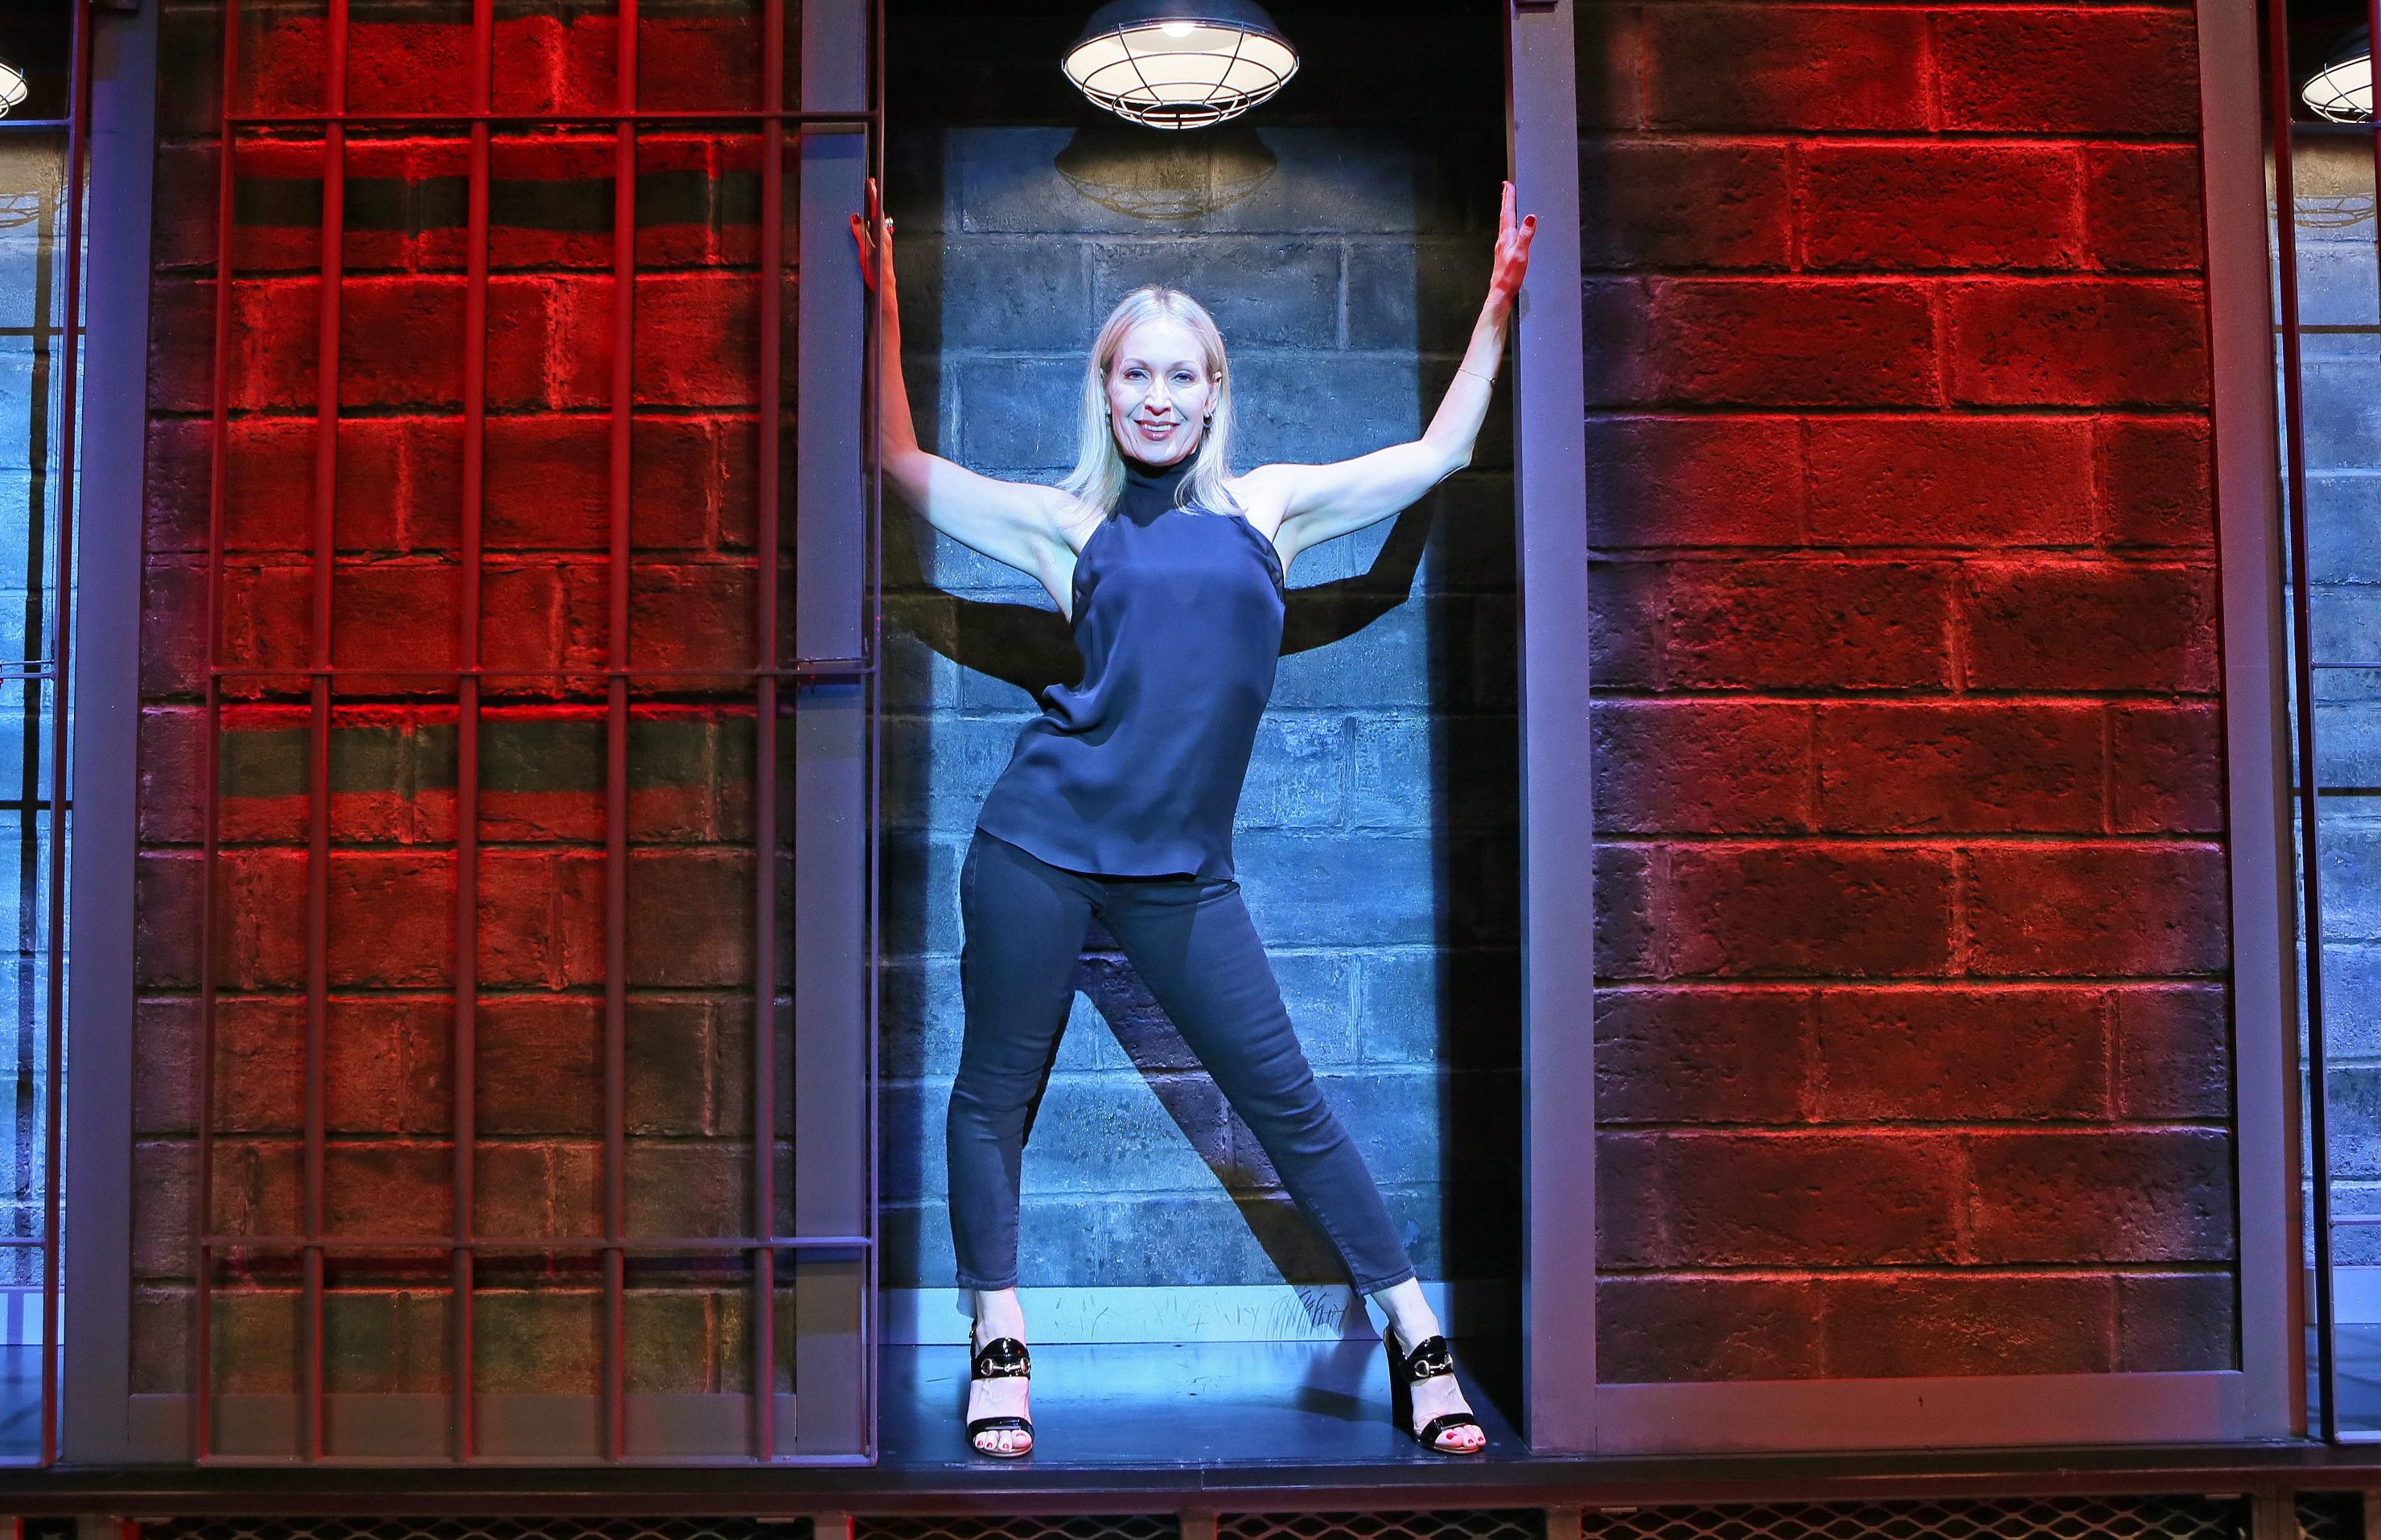 Buffalo native Marguerite Derricks stands inside a set design from Cell Block Tango (from 'Chicago') after a performance of 'ShowStoppers' at Wynn hotel-casino in Las Vegas. (Ronda Churchill/Special to The News)